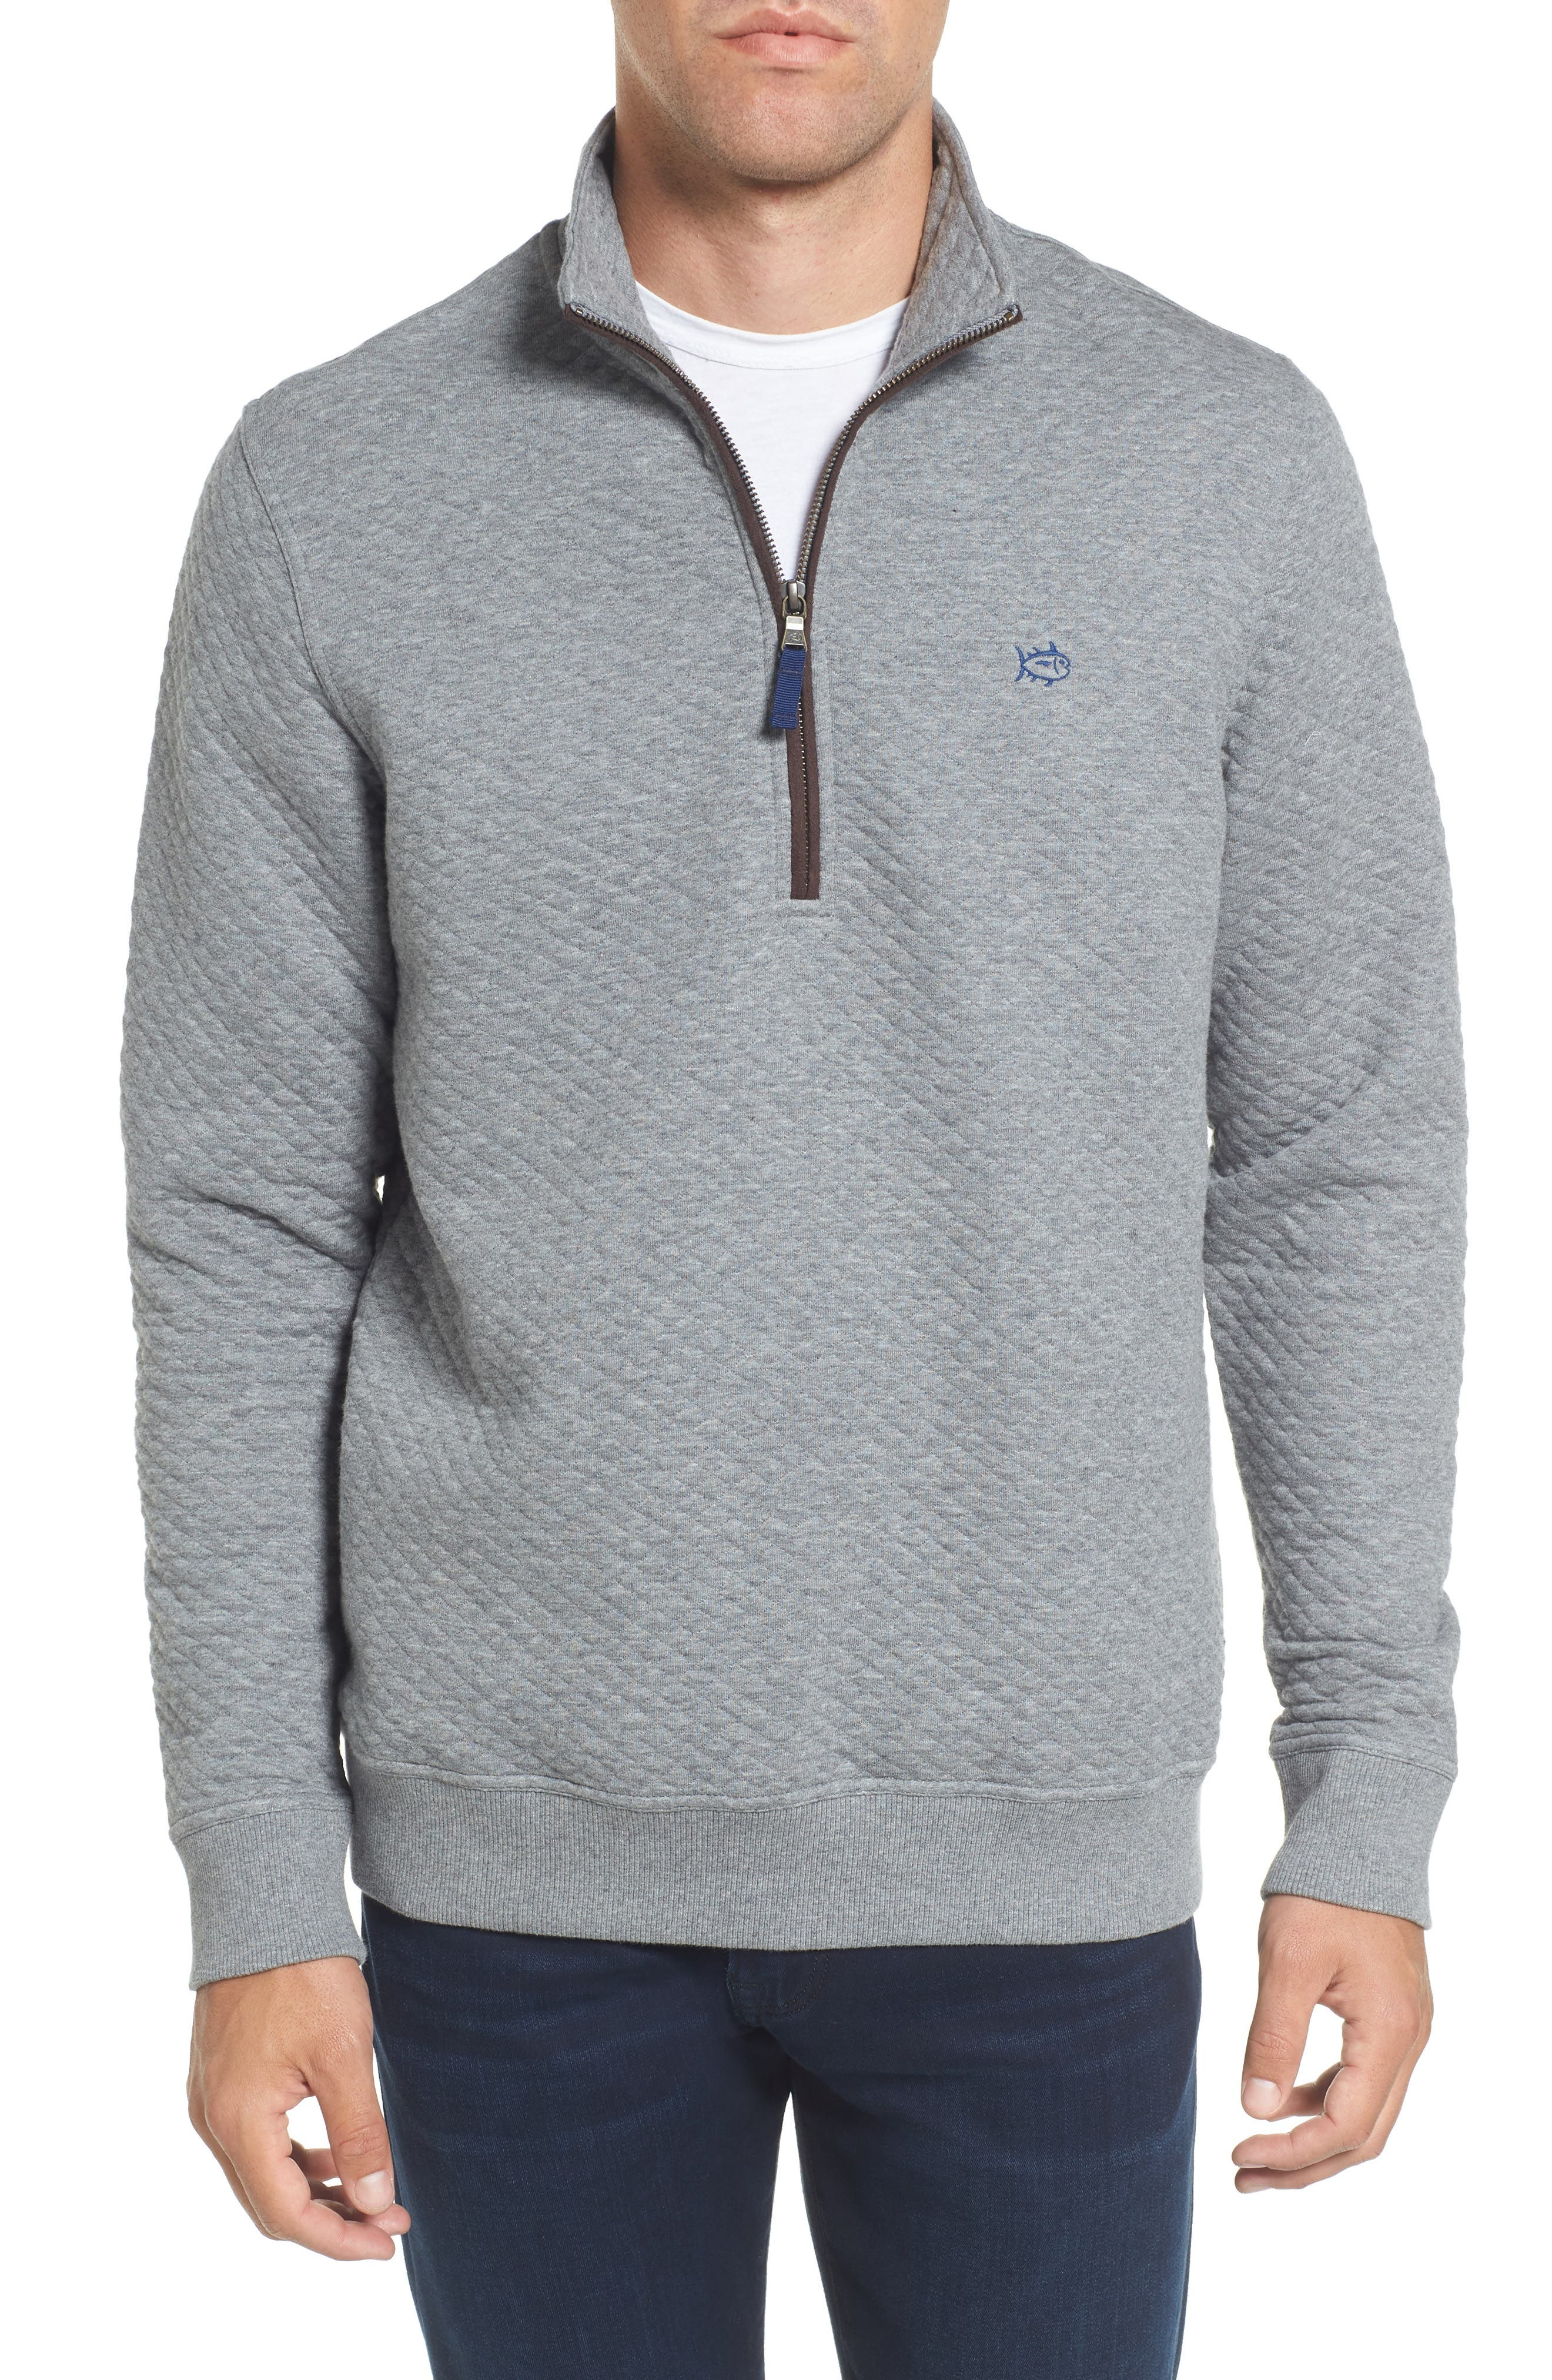 Sundown Quilted Quarter Zip Pullover,                             Main thumbnail 1, color,                             024